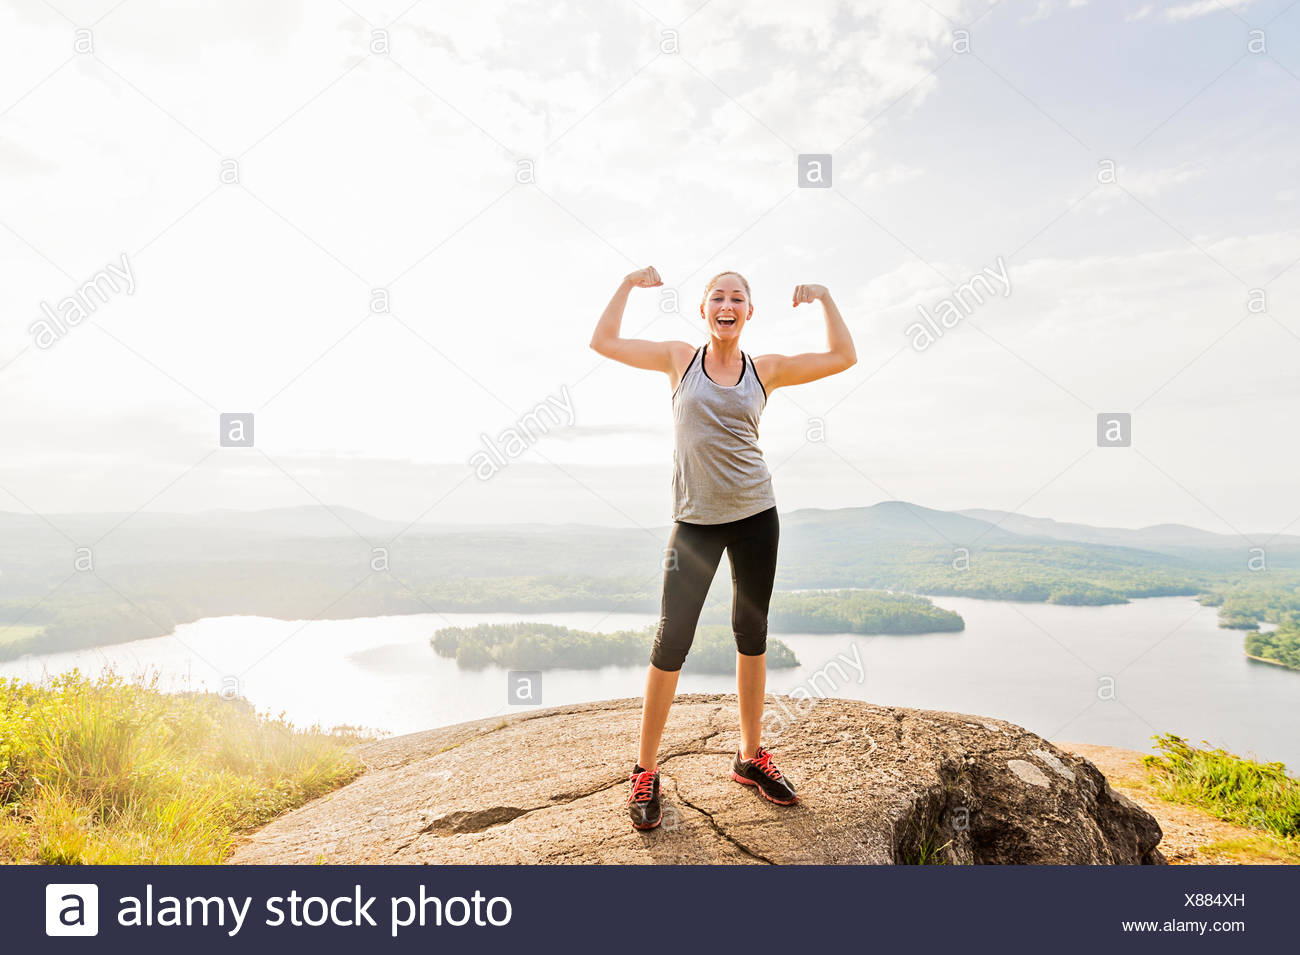 Young woman standing on top of mountain and flexing muscles - Stock Image